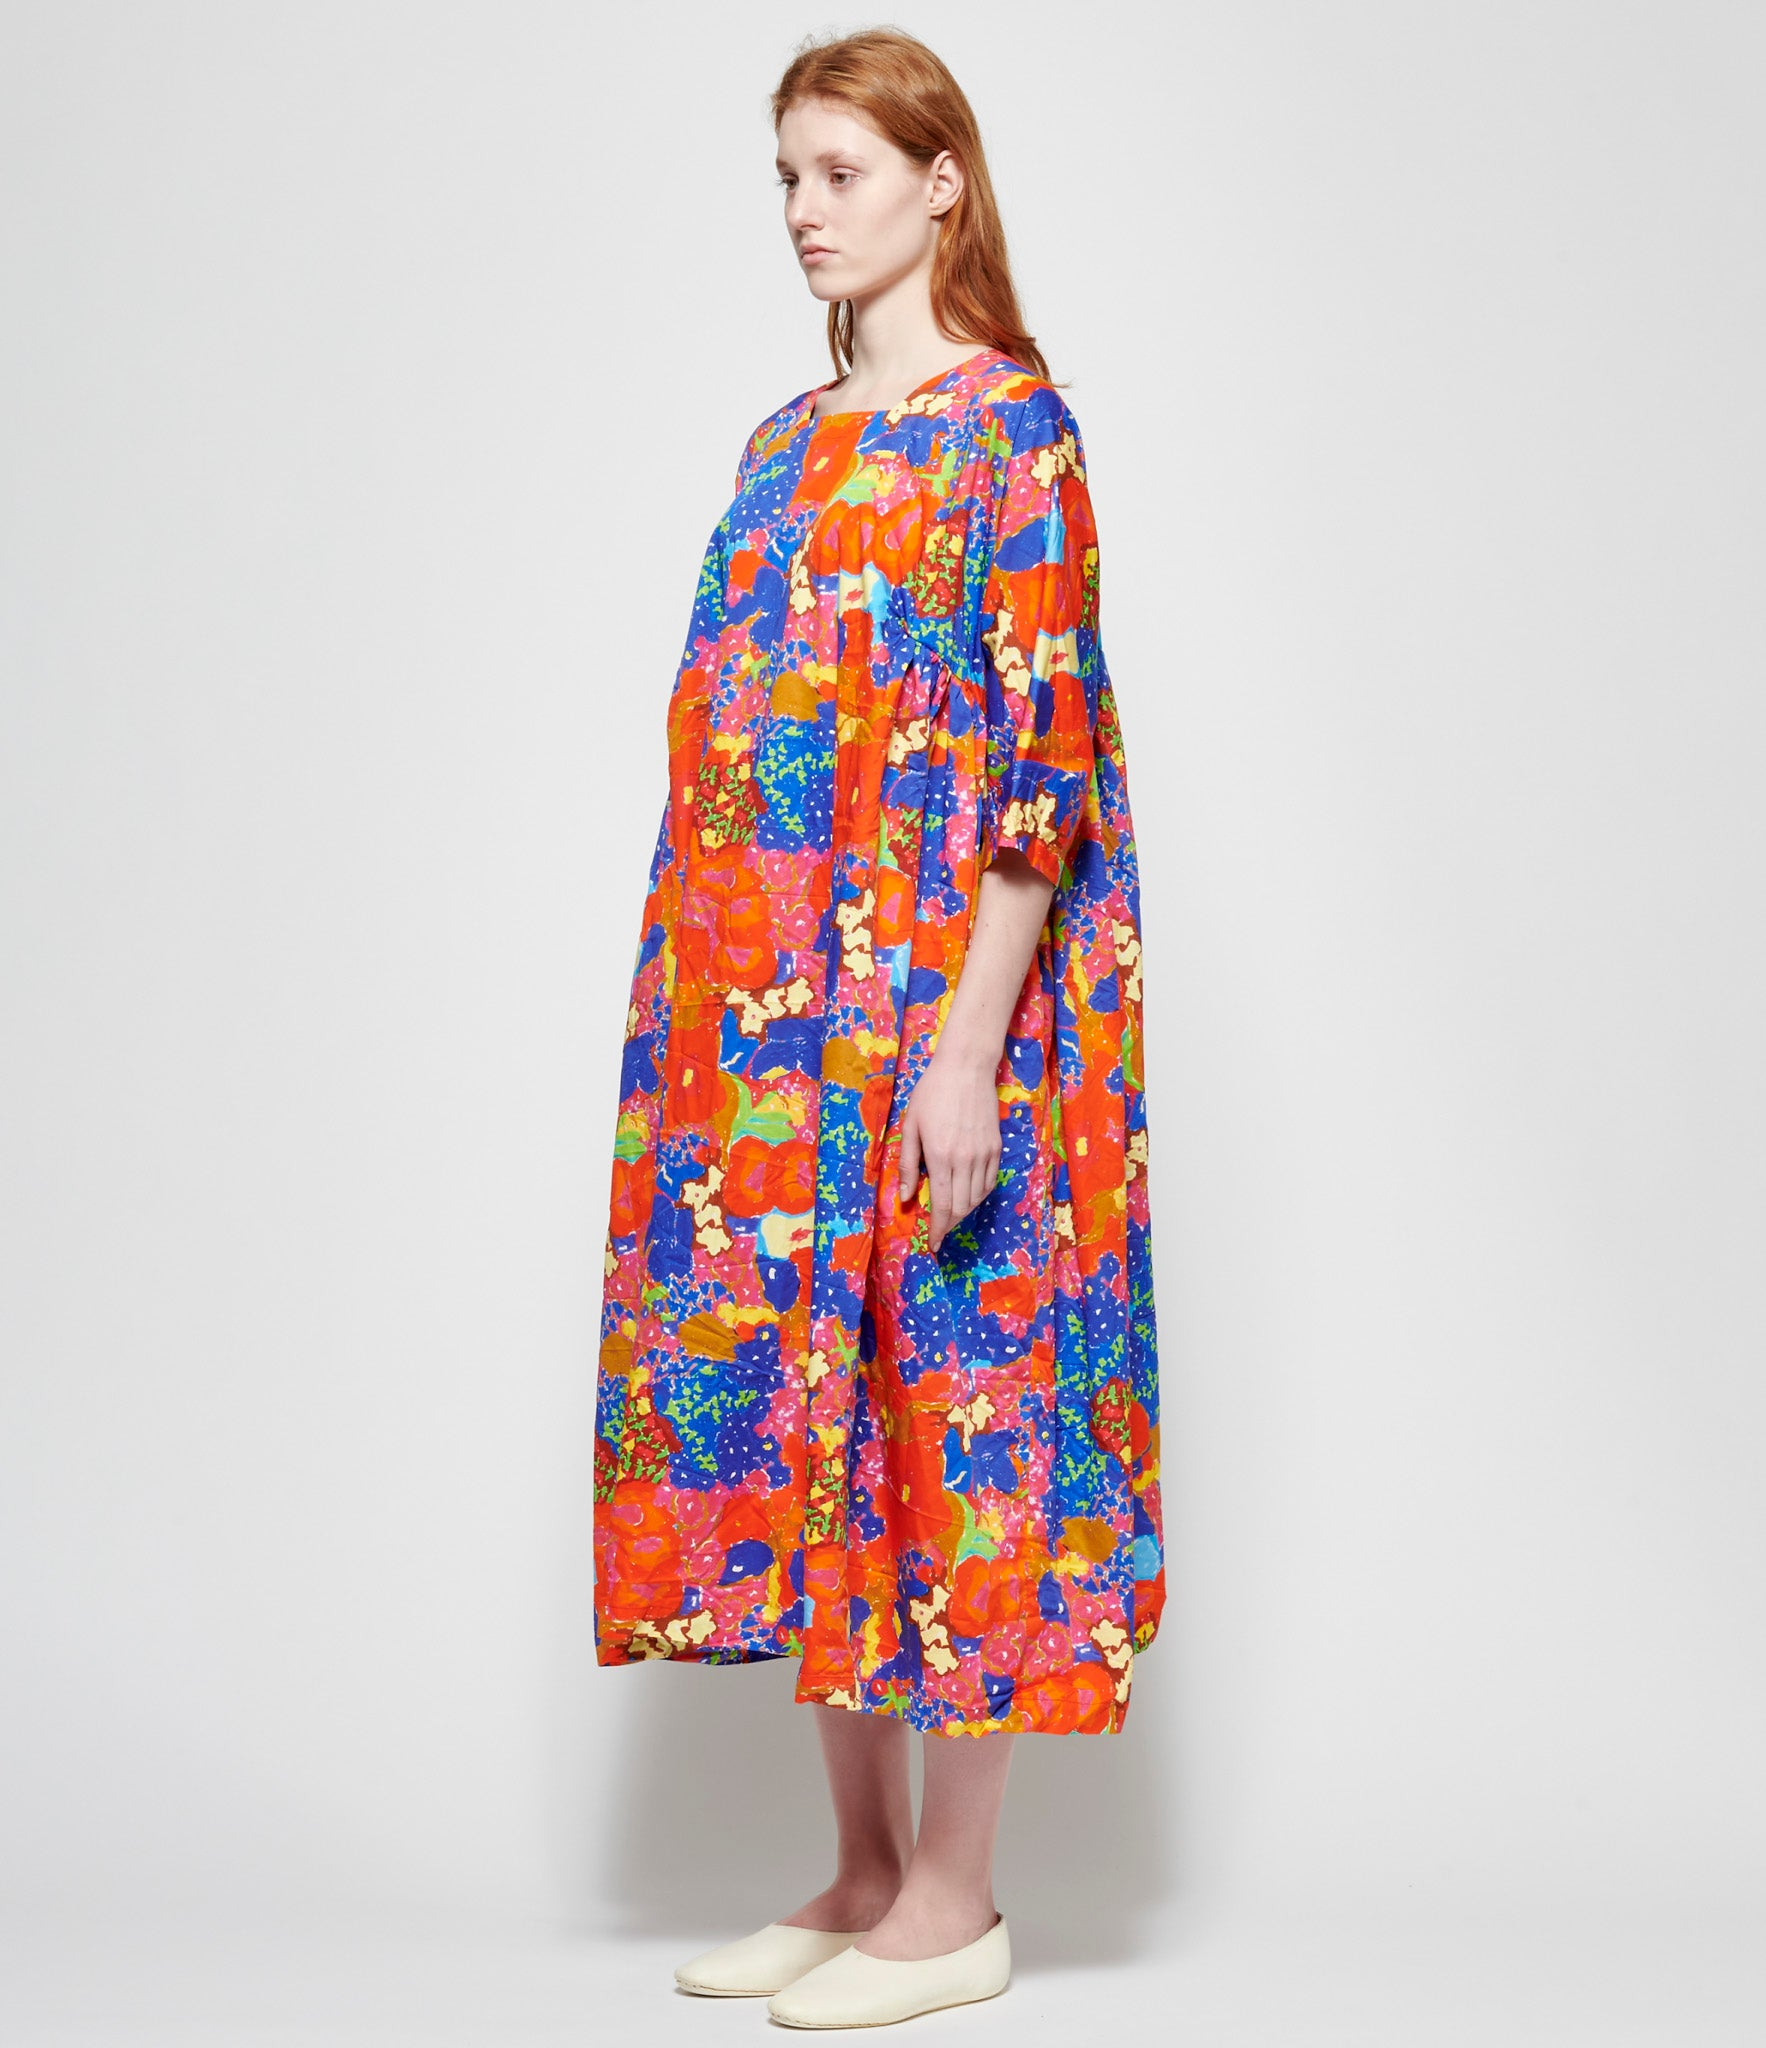 Daniela Gregis Millefiori Drawing Newpride Miele Washed Dress